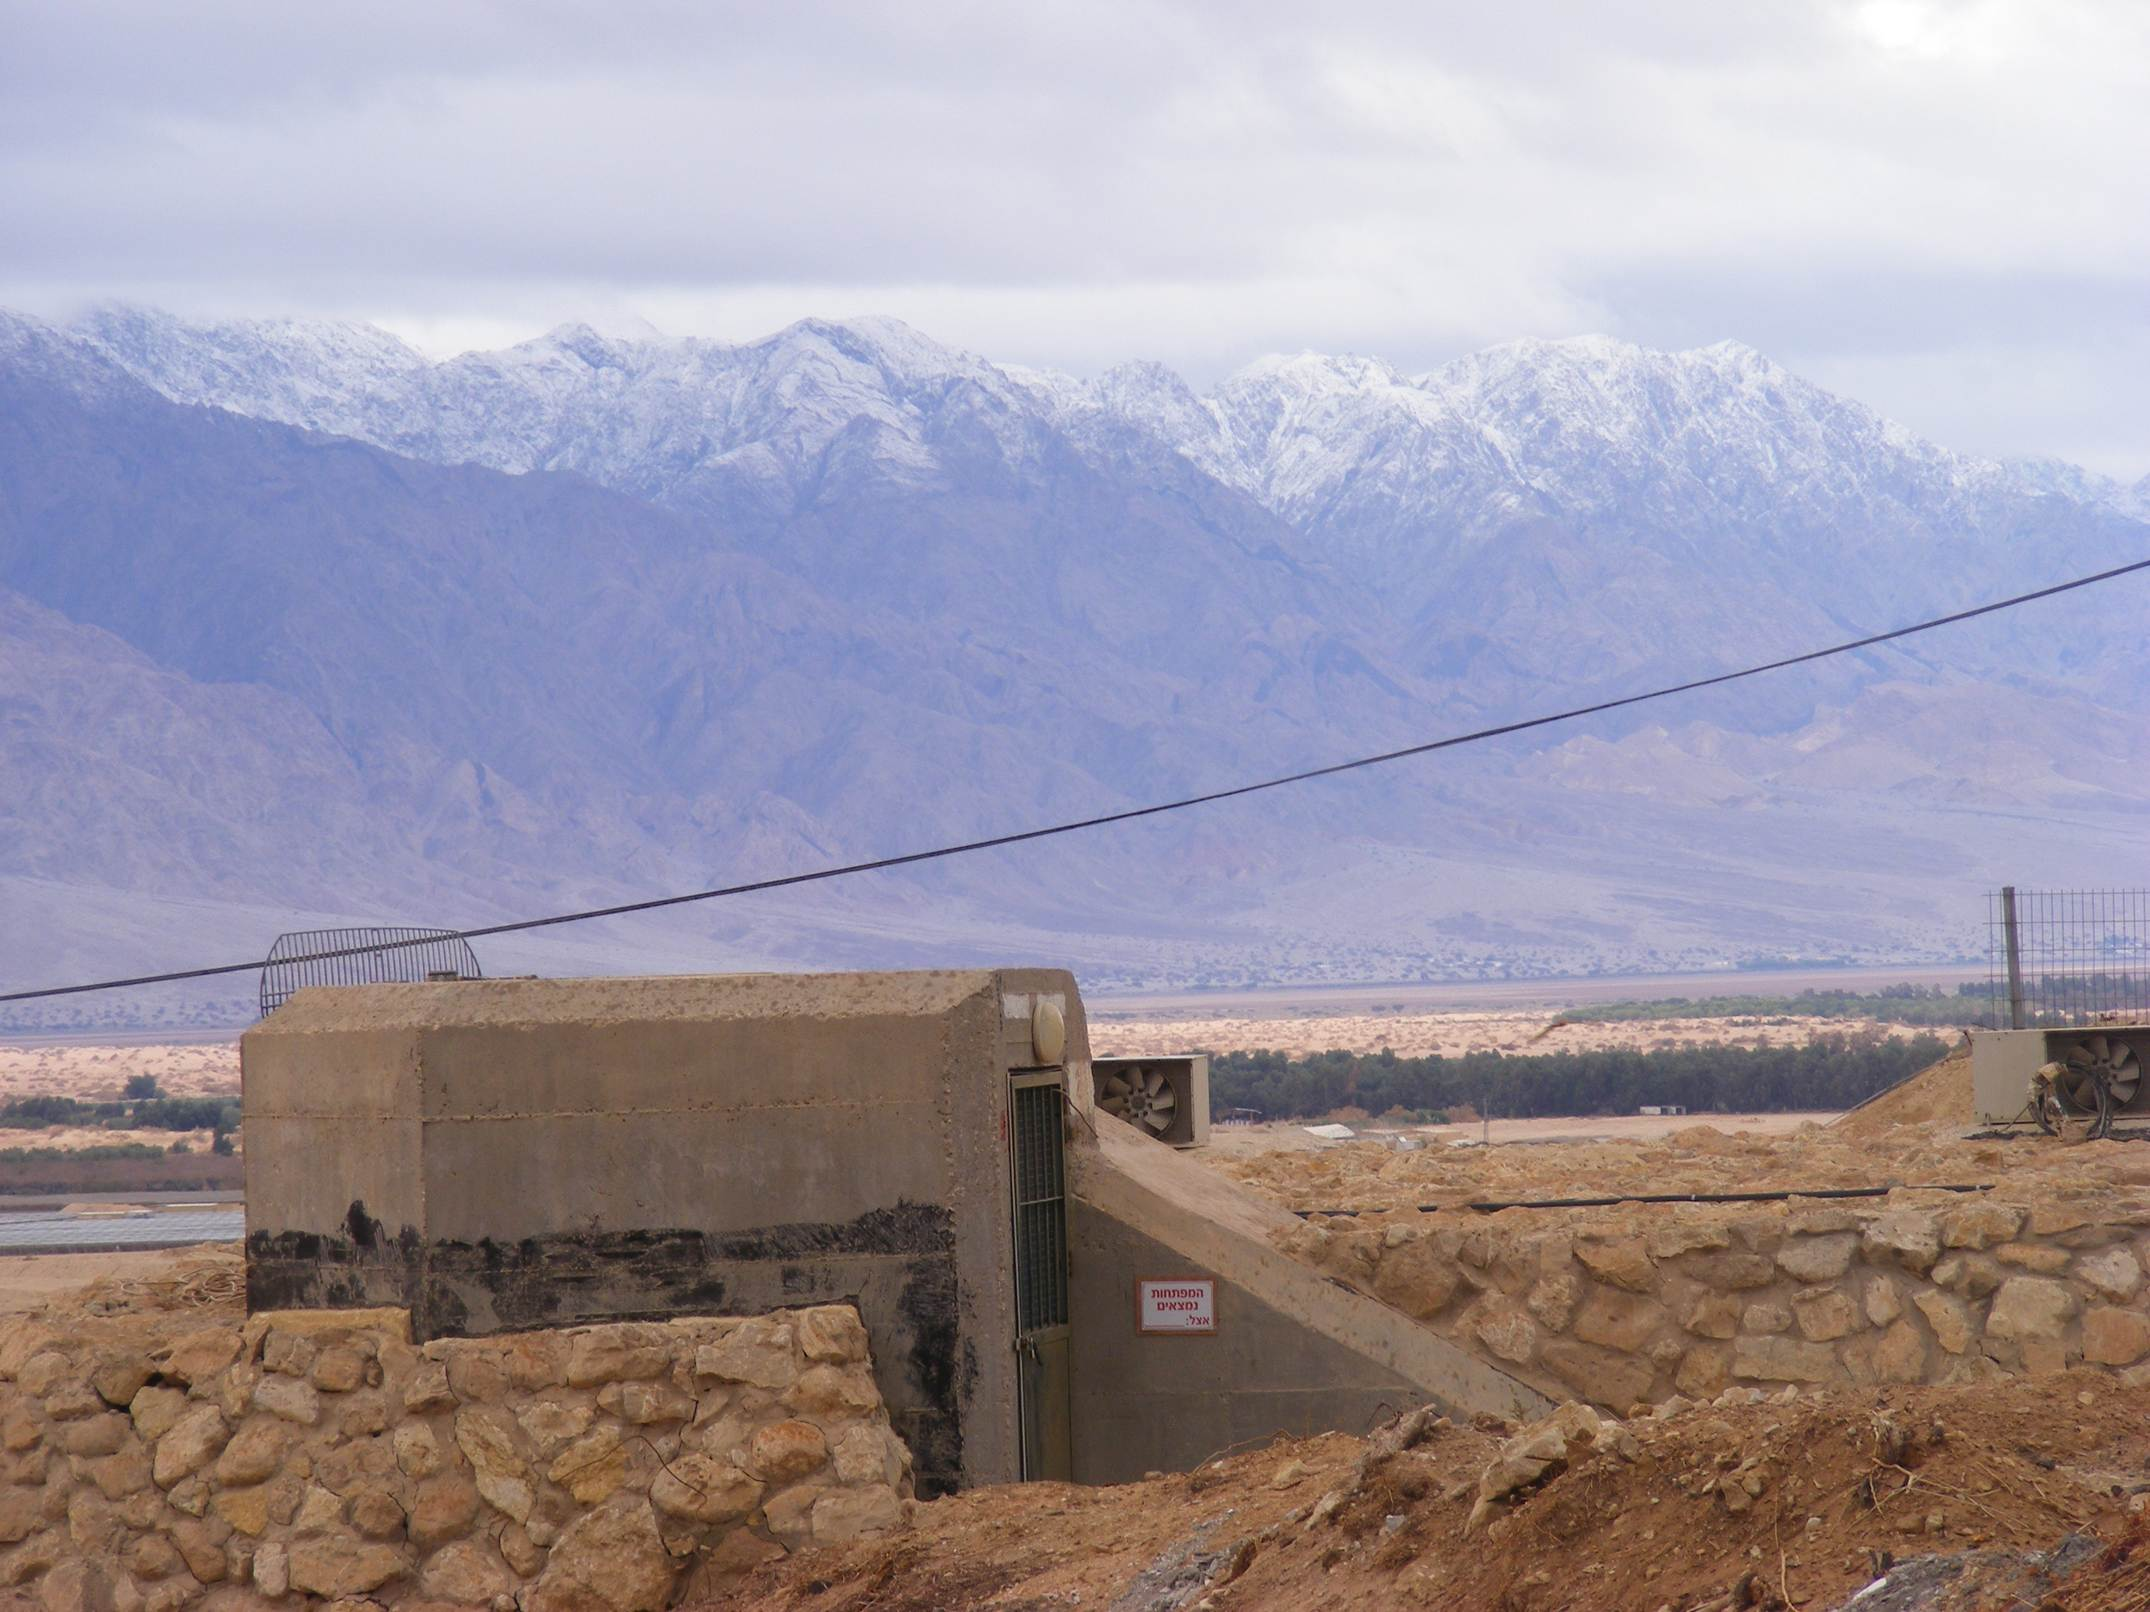 Kibbutz bunker against snowy Edom mountains, Arava 2013